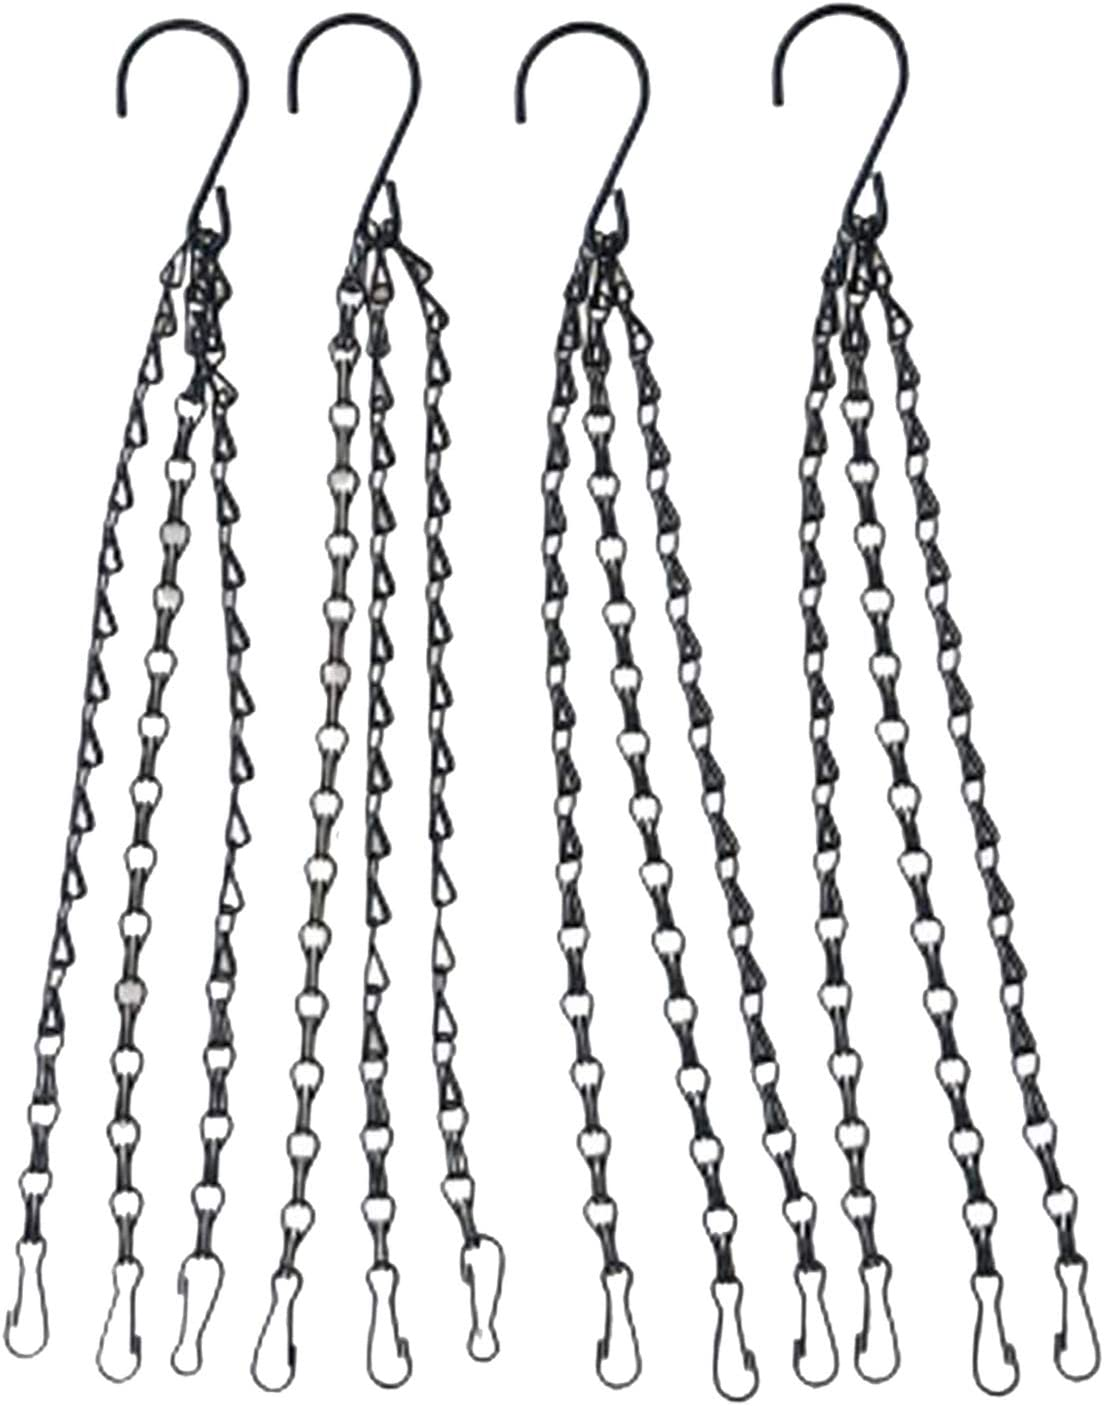 4Pack - 20 Inch Black Hanging Basket Chains Flower Plant Pot Replacement Chain Hanger for Bird Feeders, Planters, Lanterns and Ornaments